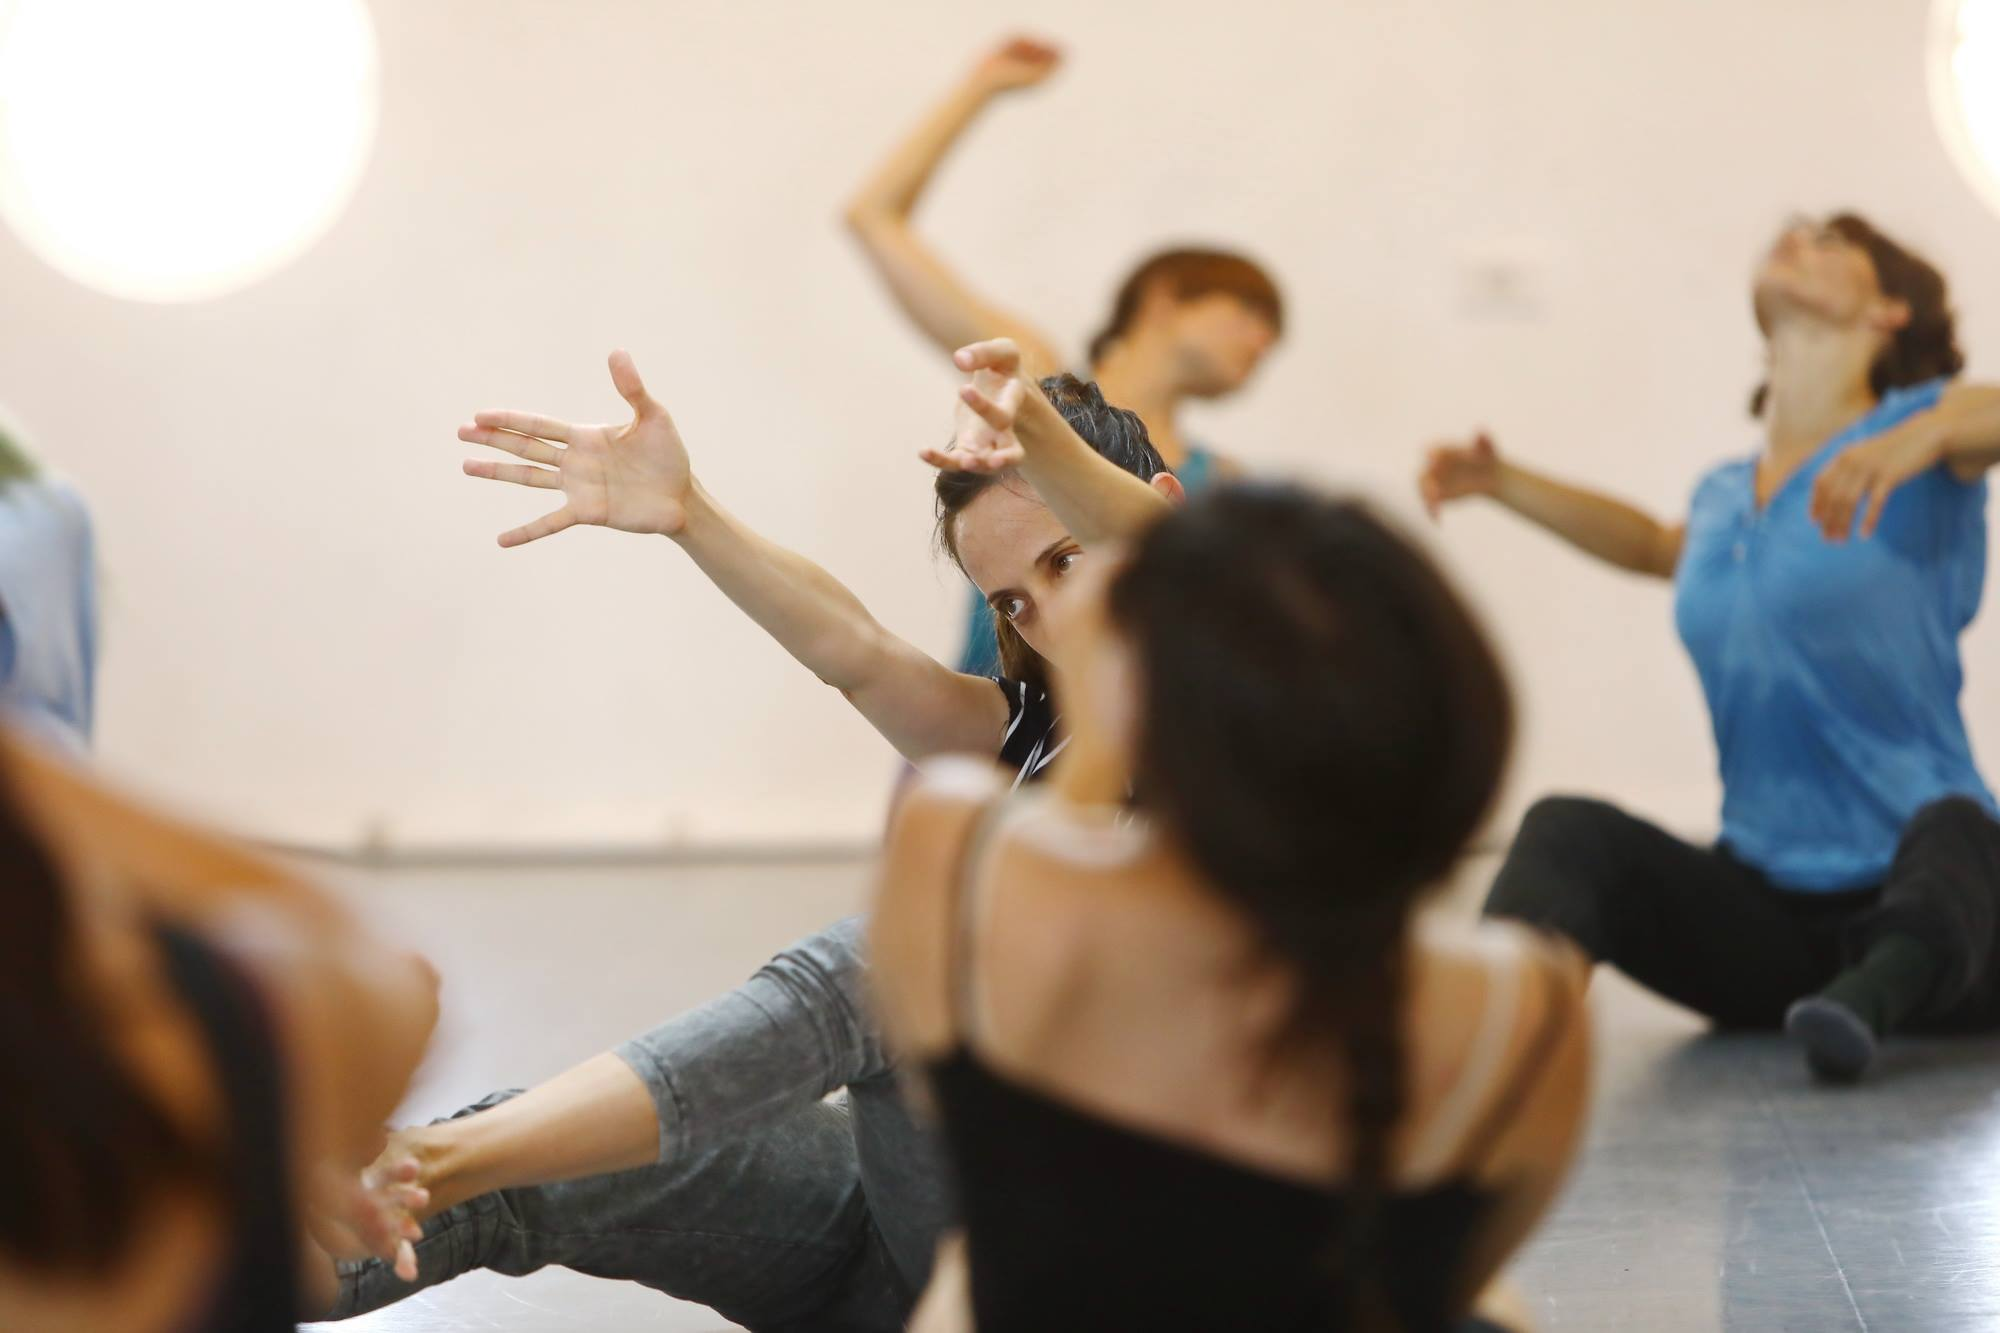 No current classes set up  - Subscribe below to keep up to date with future Gaga Classes hosted by Addo Platform